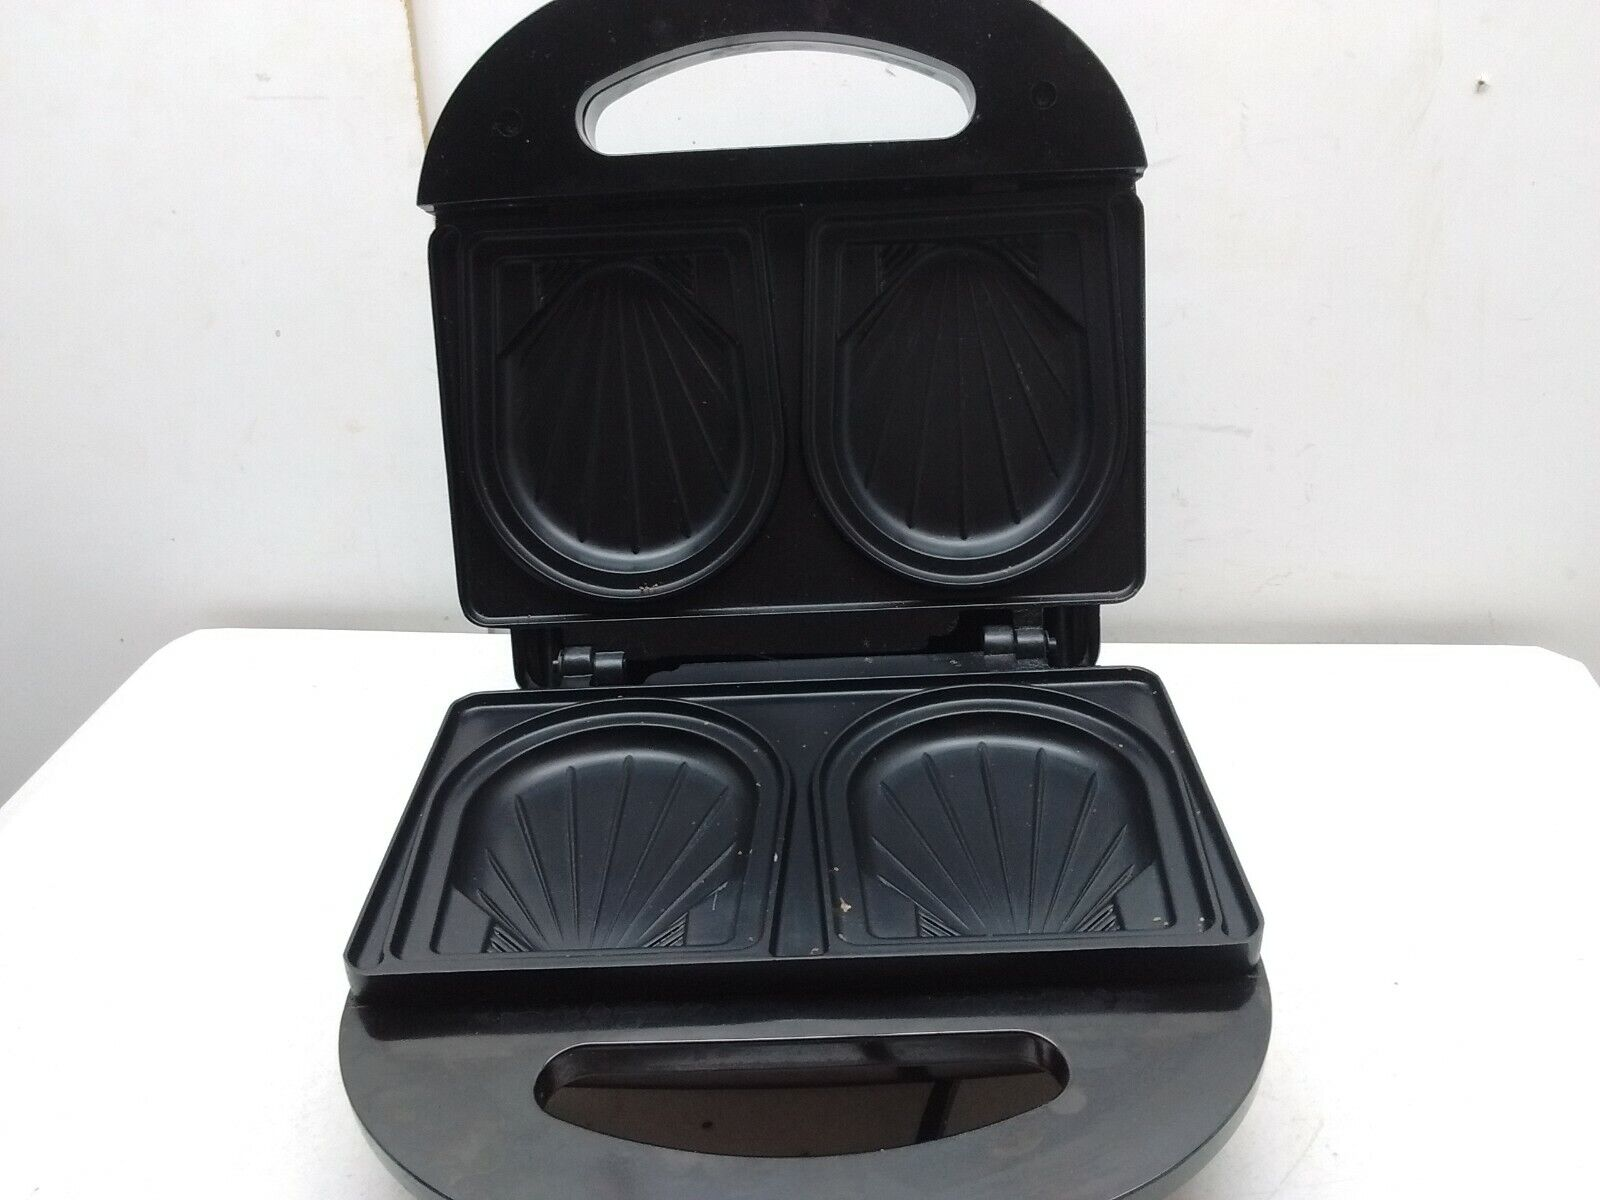 Villaware Croque Monsieur Shell shaped electric sandwhich Maker Press Grill